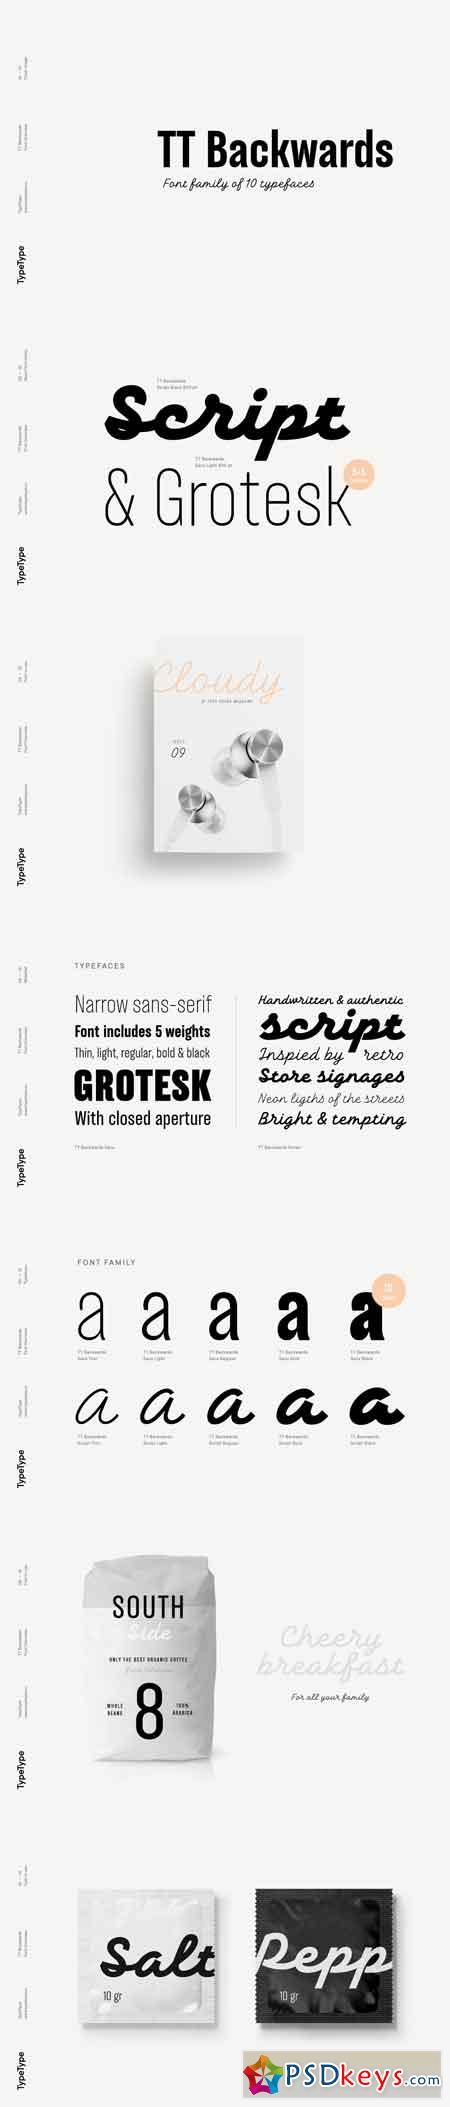 TT Backwards Font Family - 10 Fonts